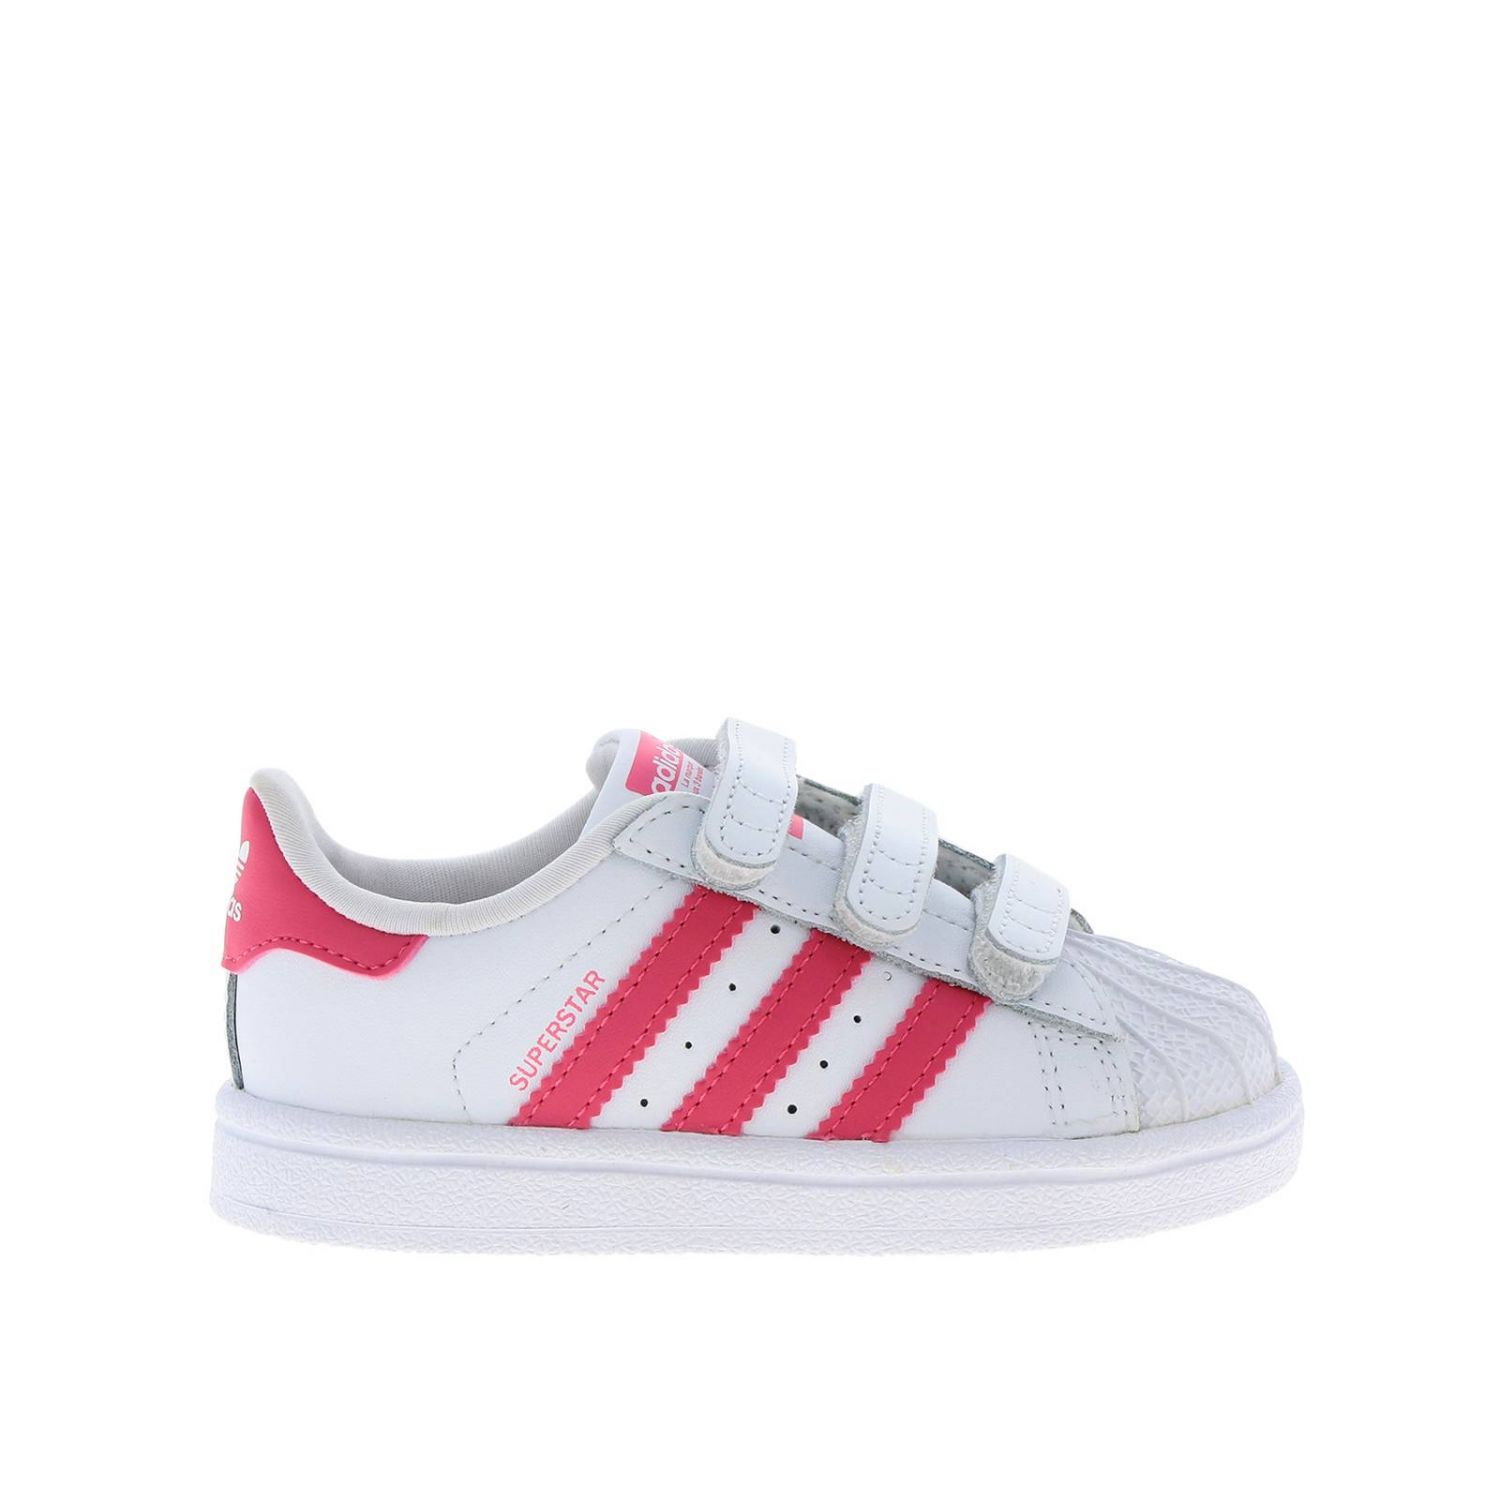 Shoes Adidas Originals: Adidas Originals Superstar Sneakers in leather with 3 contrasting stripes white 1